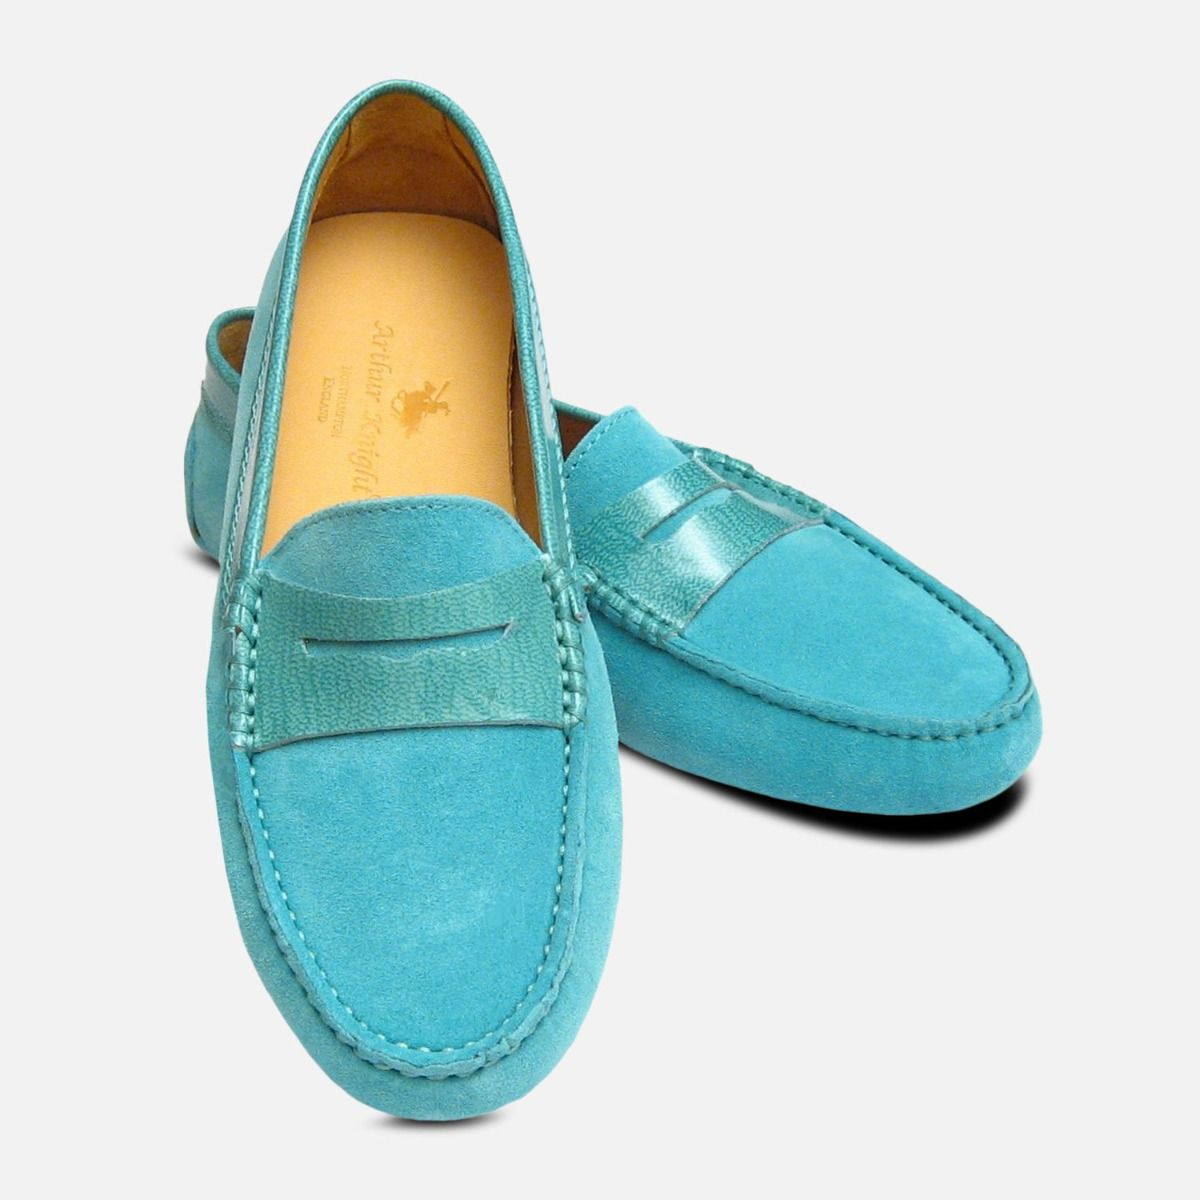 7ed777dbbf058 Turquoise Suede   Patent Leather Designer Ladies Arthur Knight Shoes